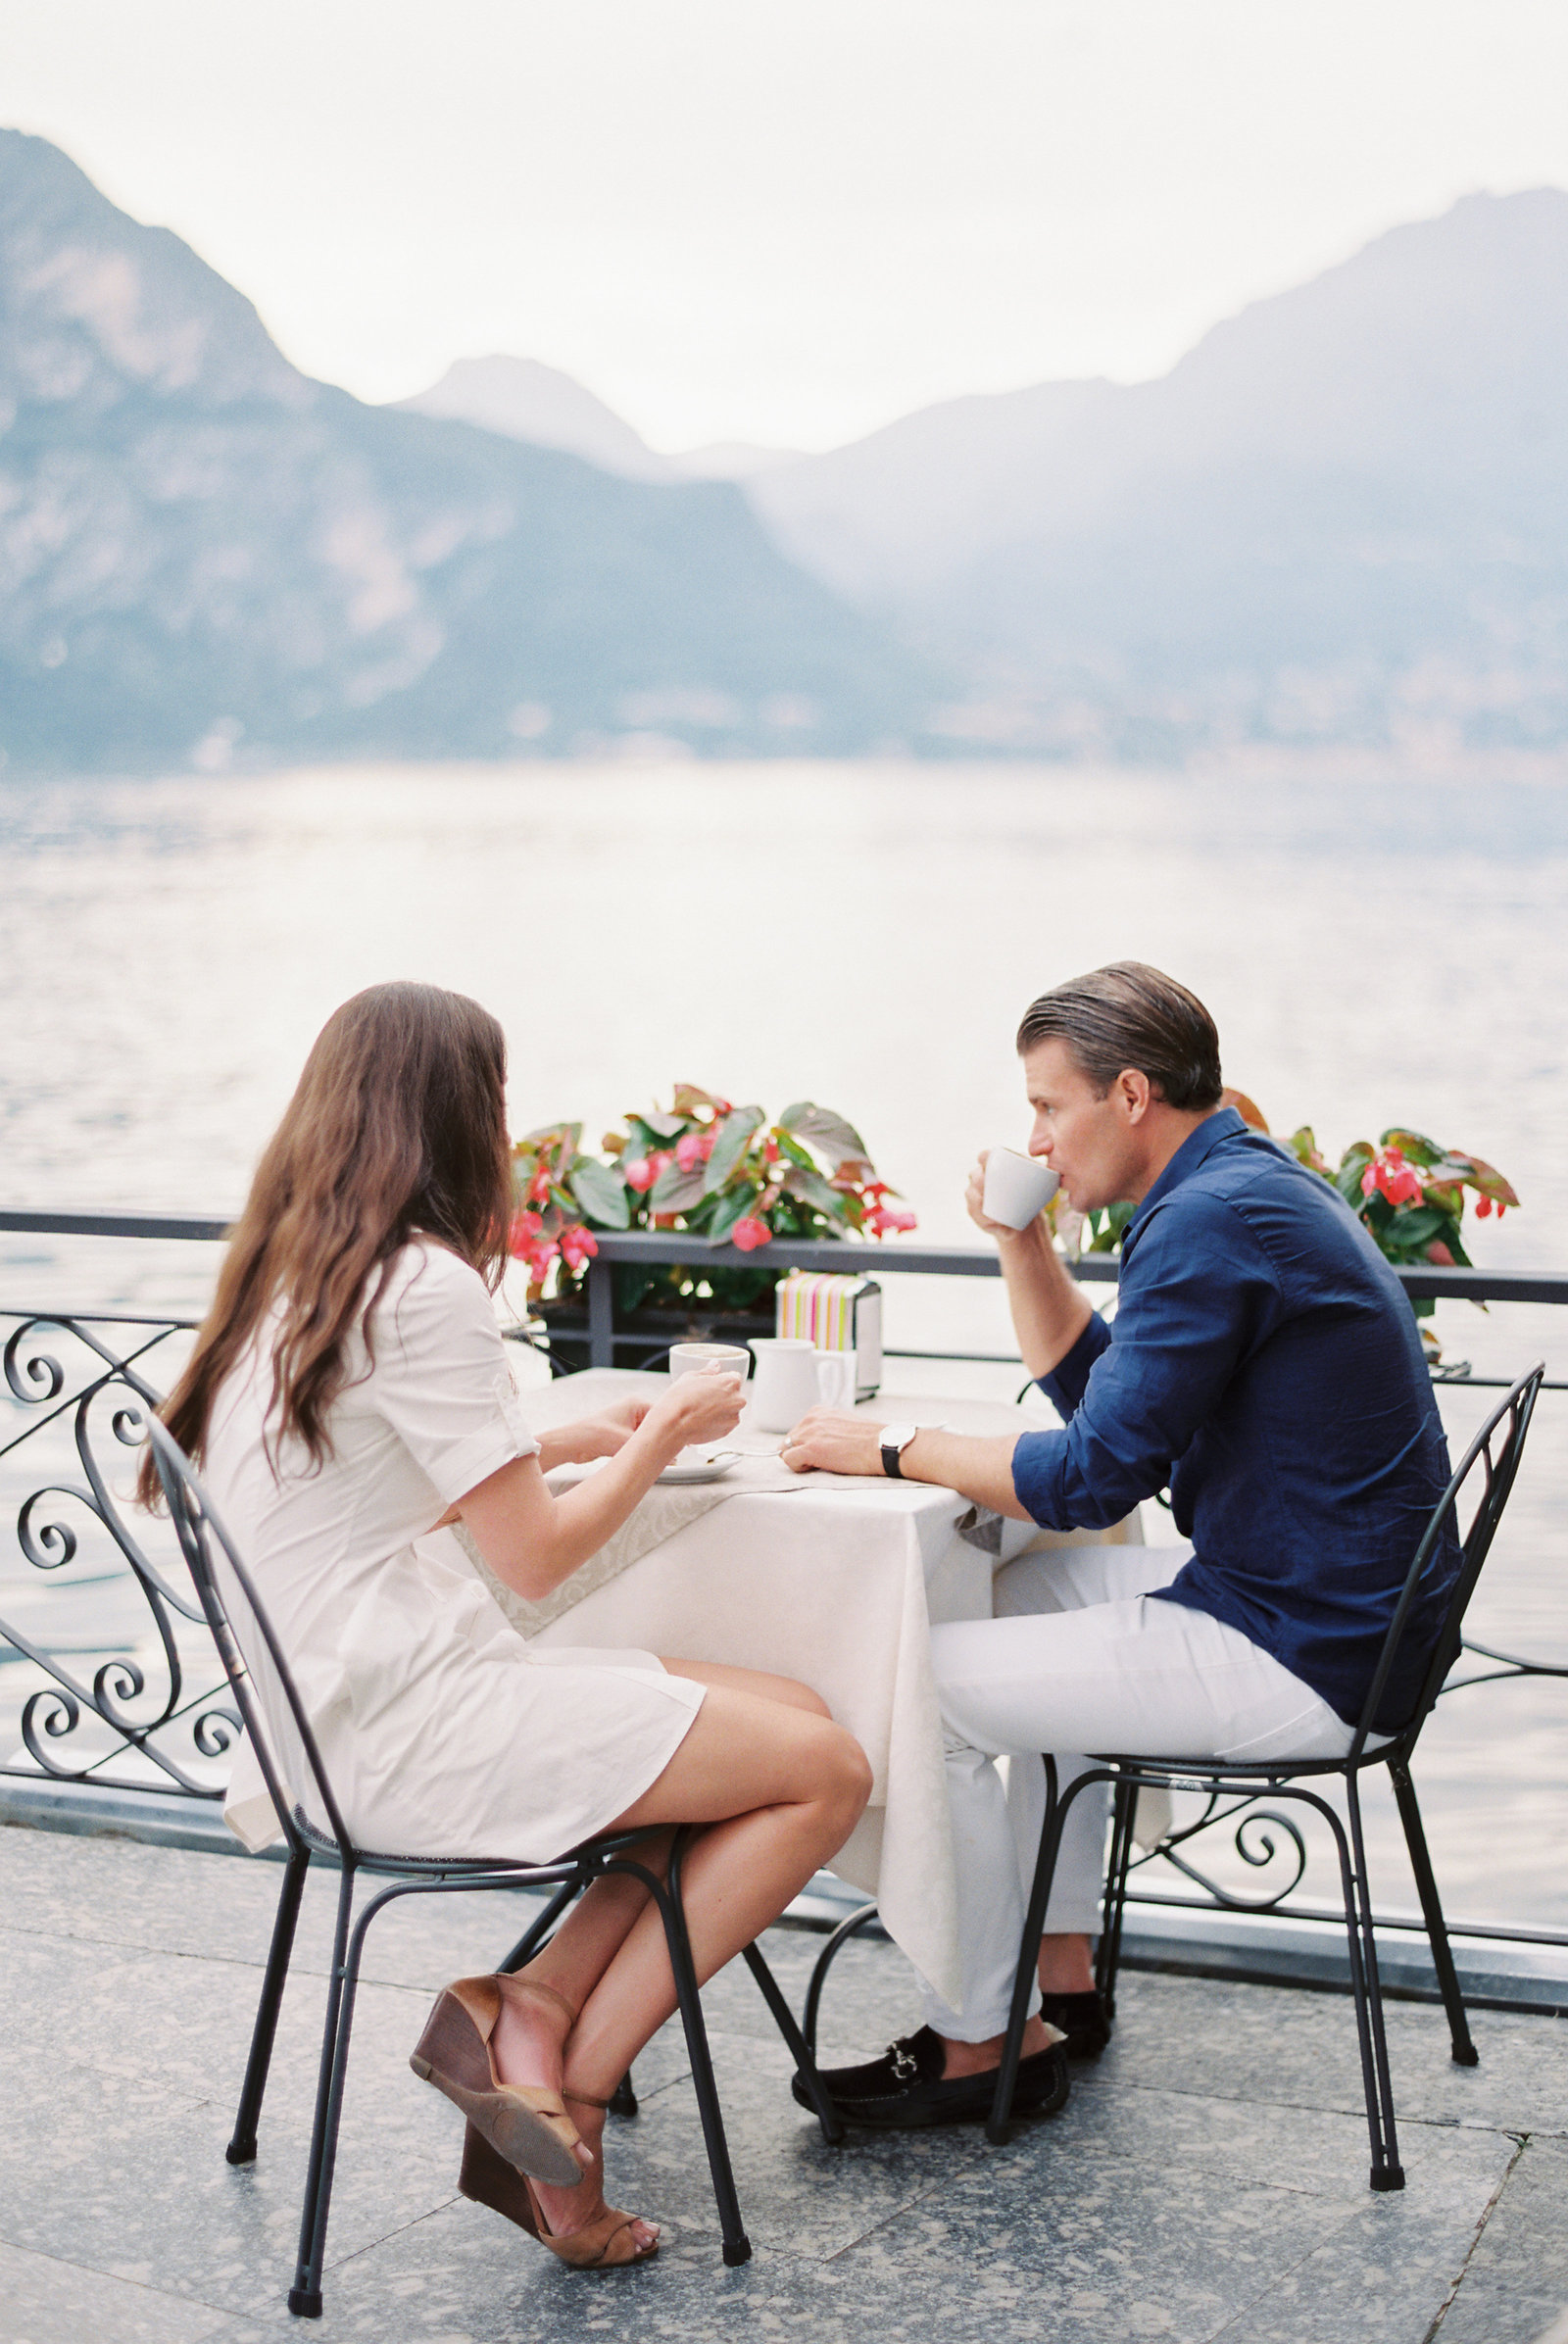 lake-como-italy-destination-wedding-honeymoon-session-melanie-gabrielle-photogrpahy-046